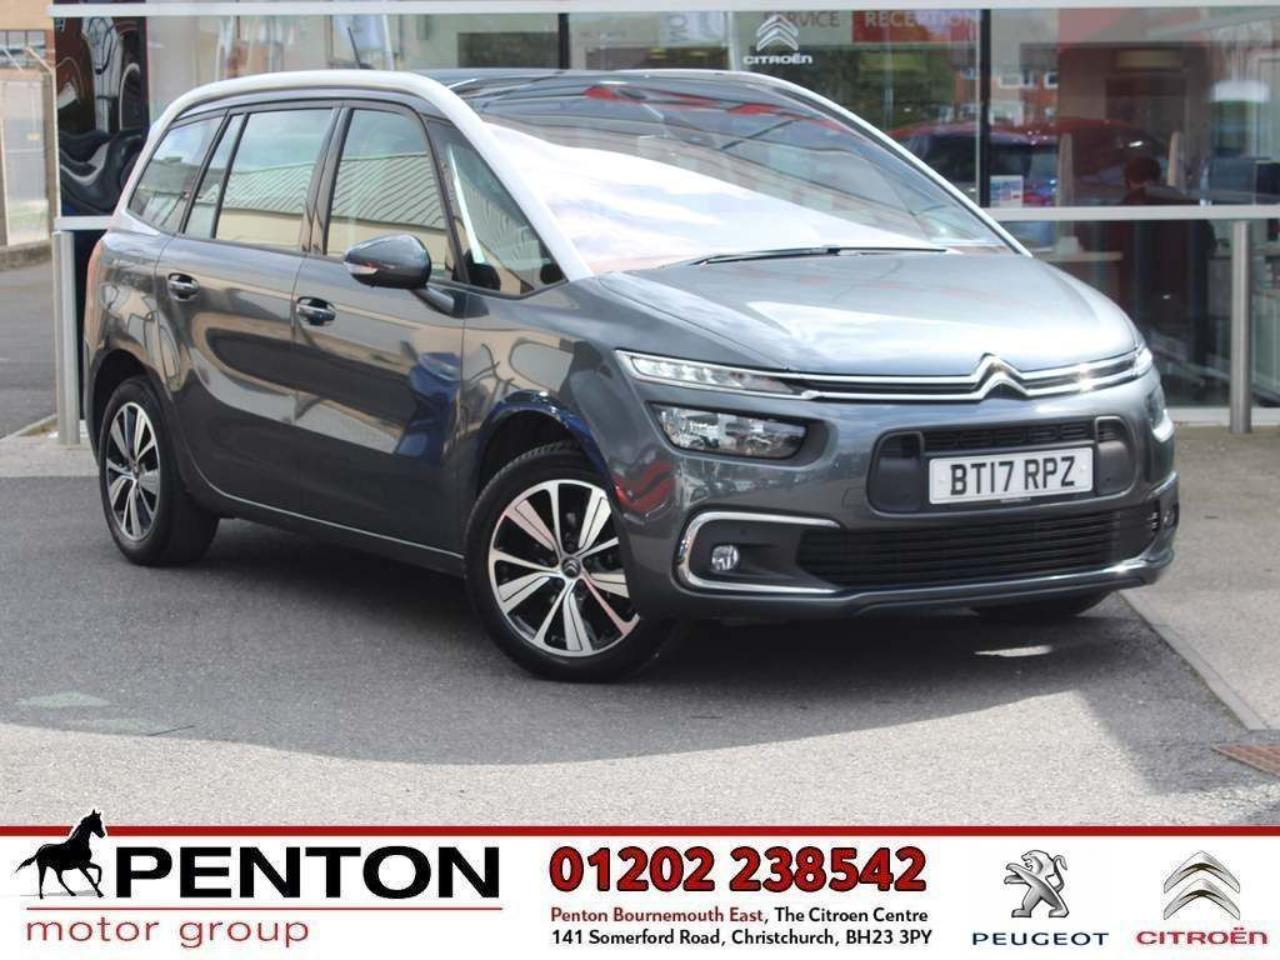 Citroën Grand C4 Picasso 1.6 BlueHDi Feel EAT6 (s/s) 5dr